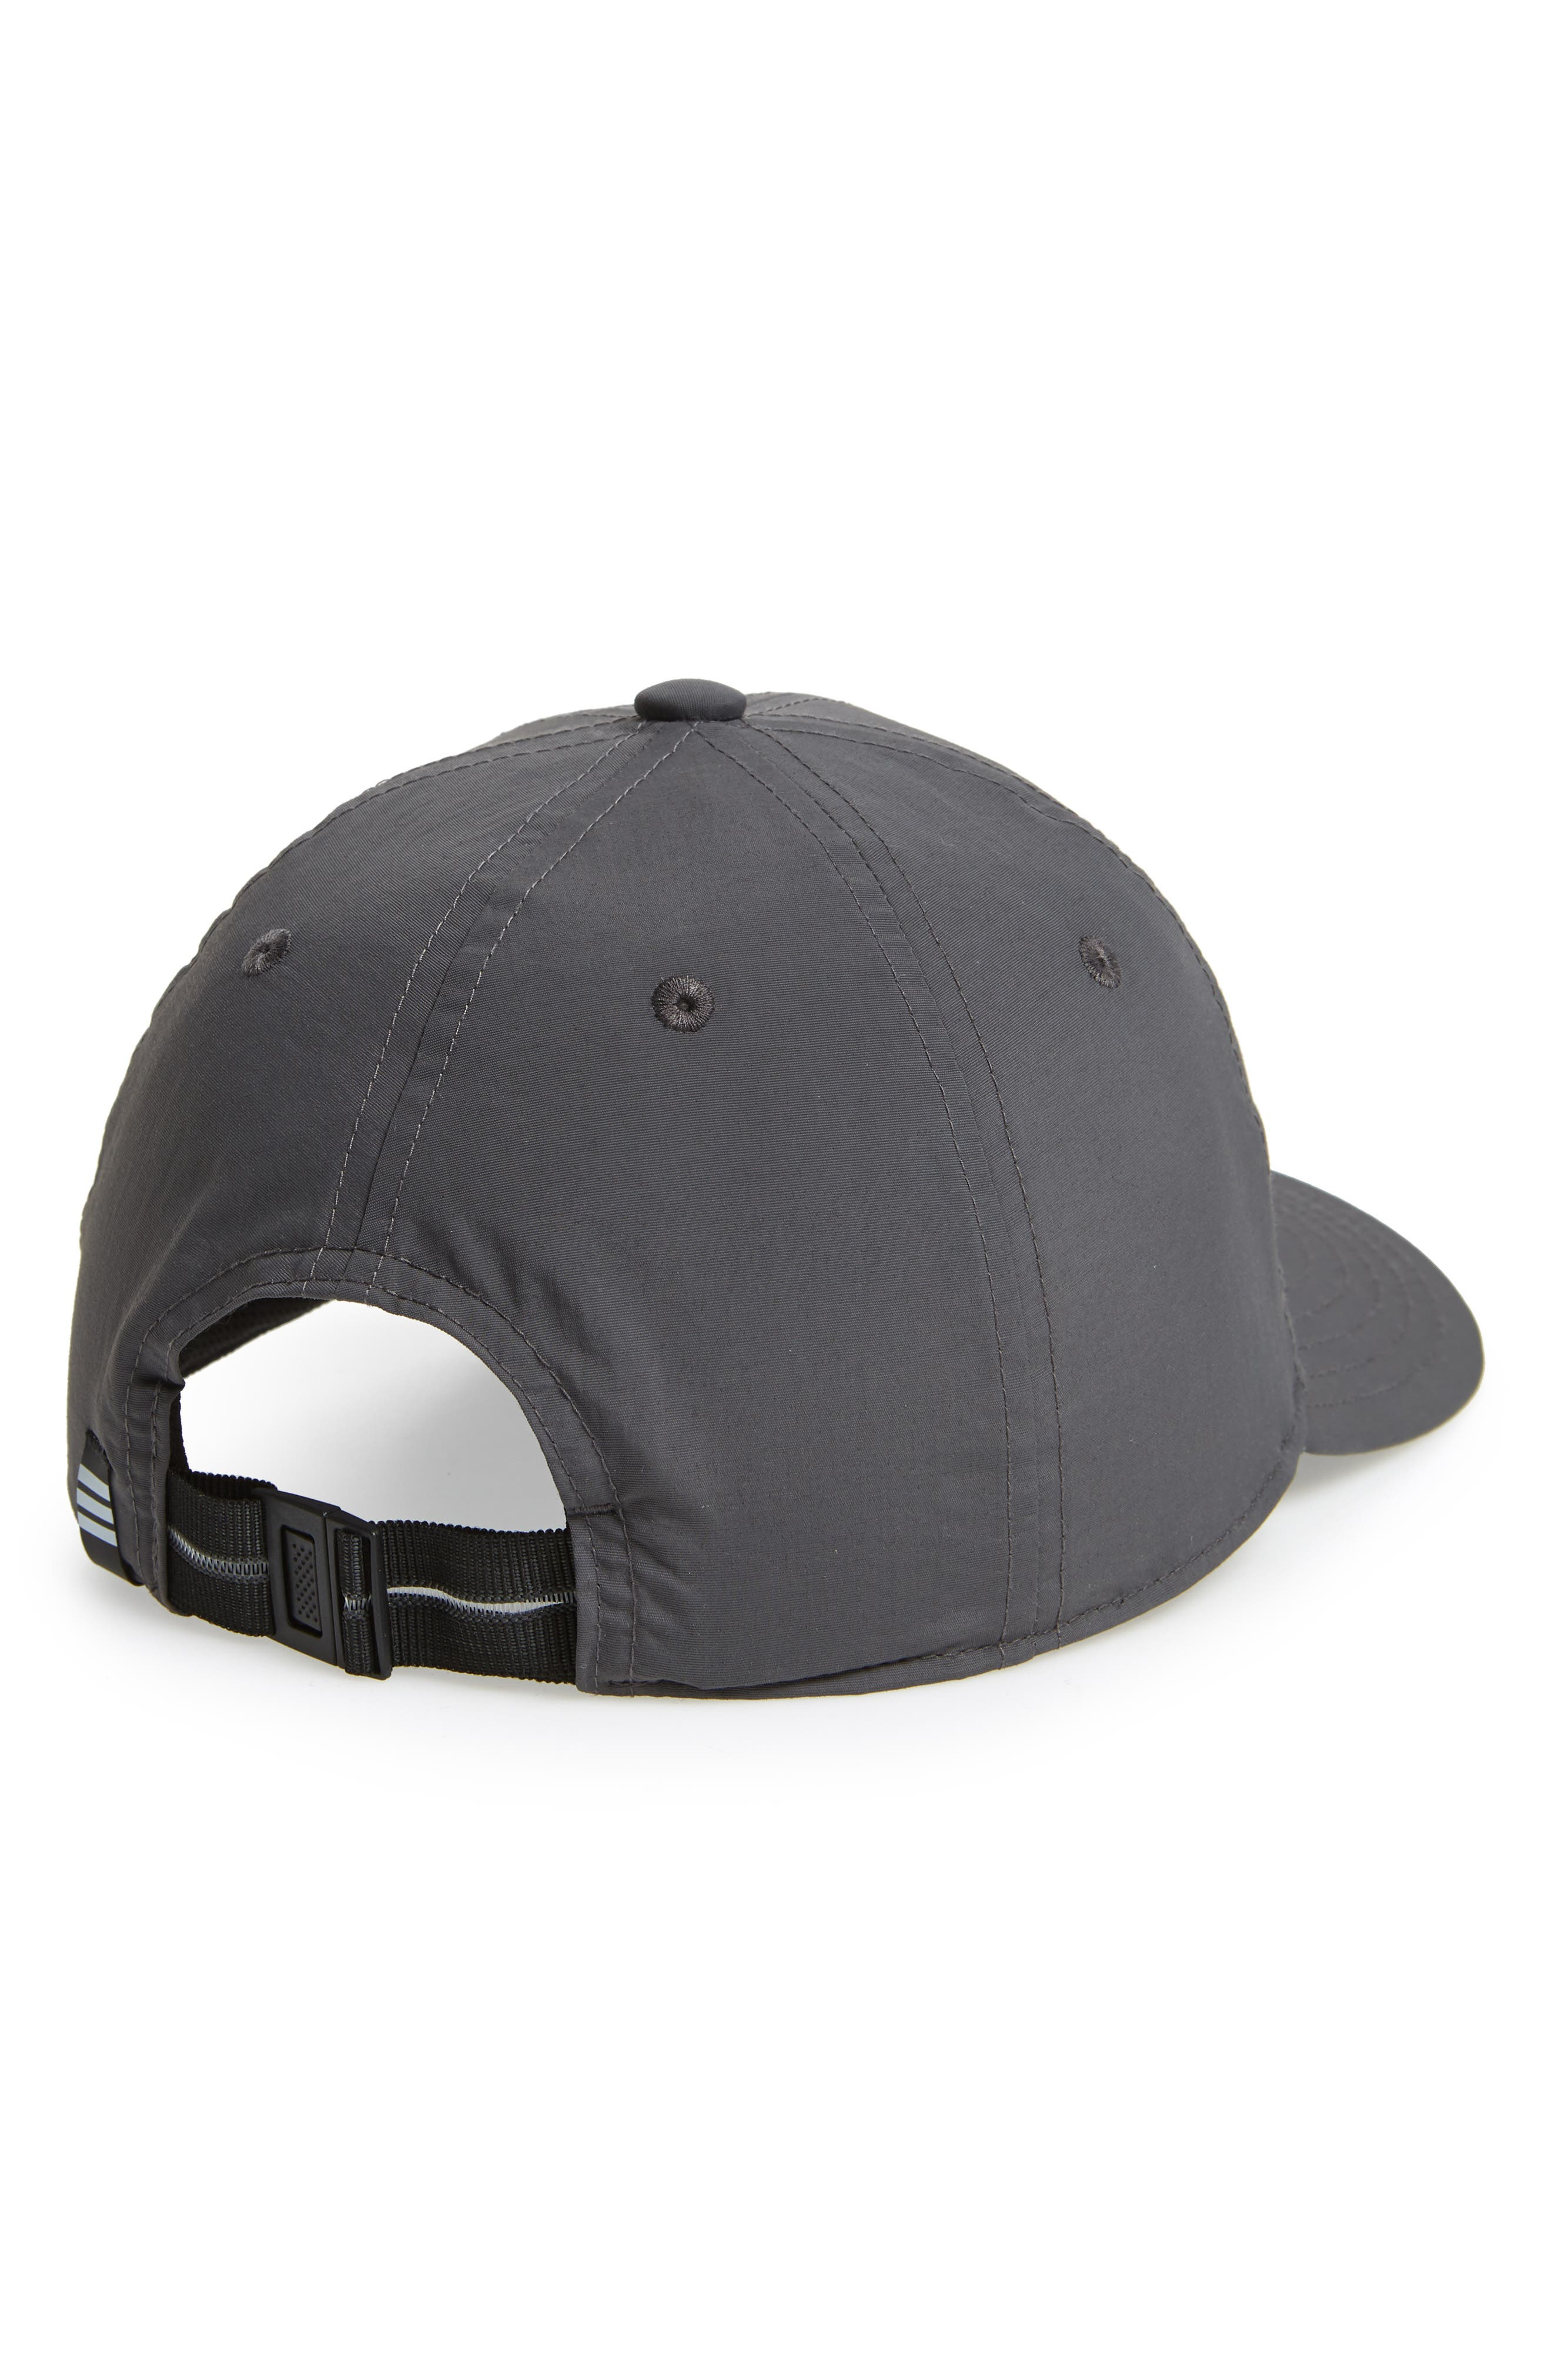 Relaxed Ball Cap,                             Alternate thumbnail 5, color,